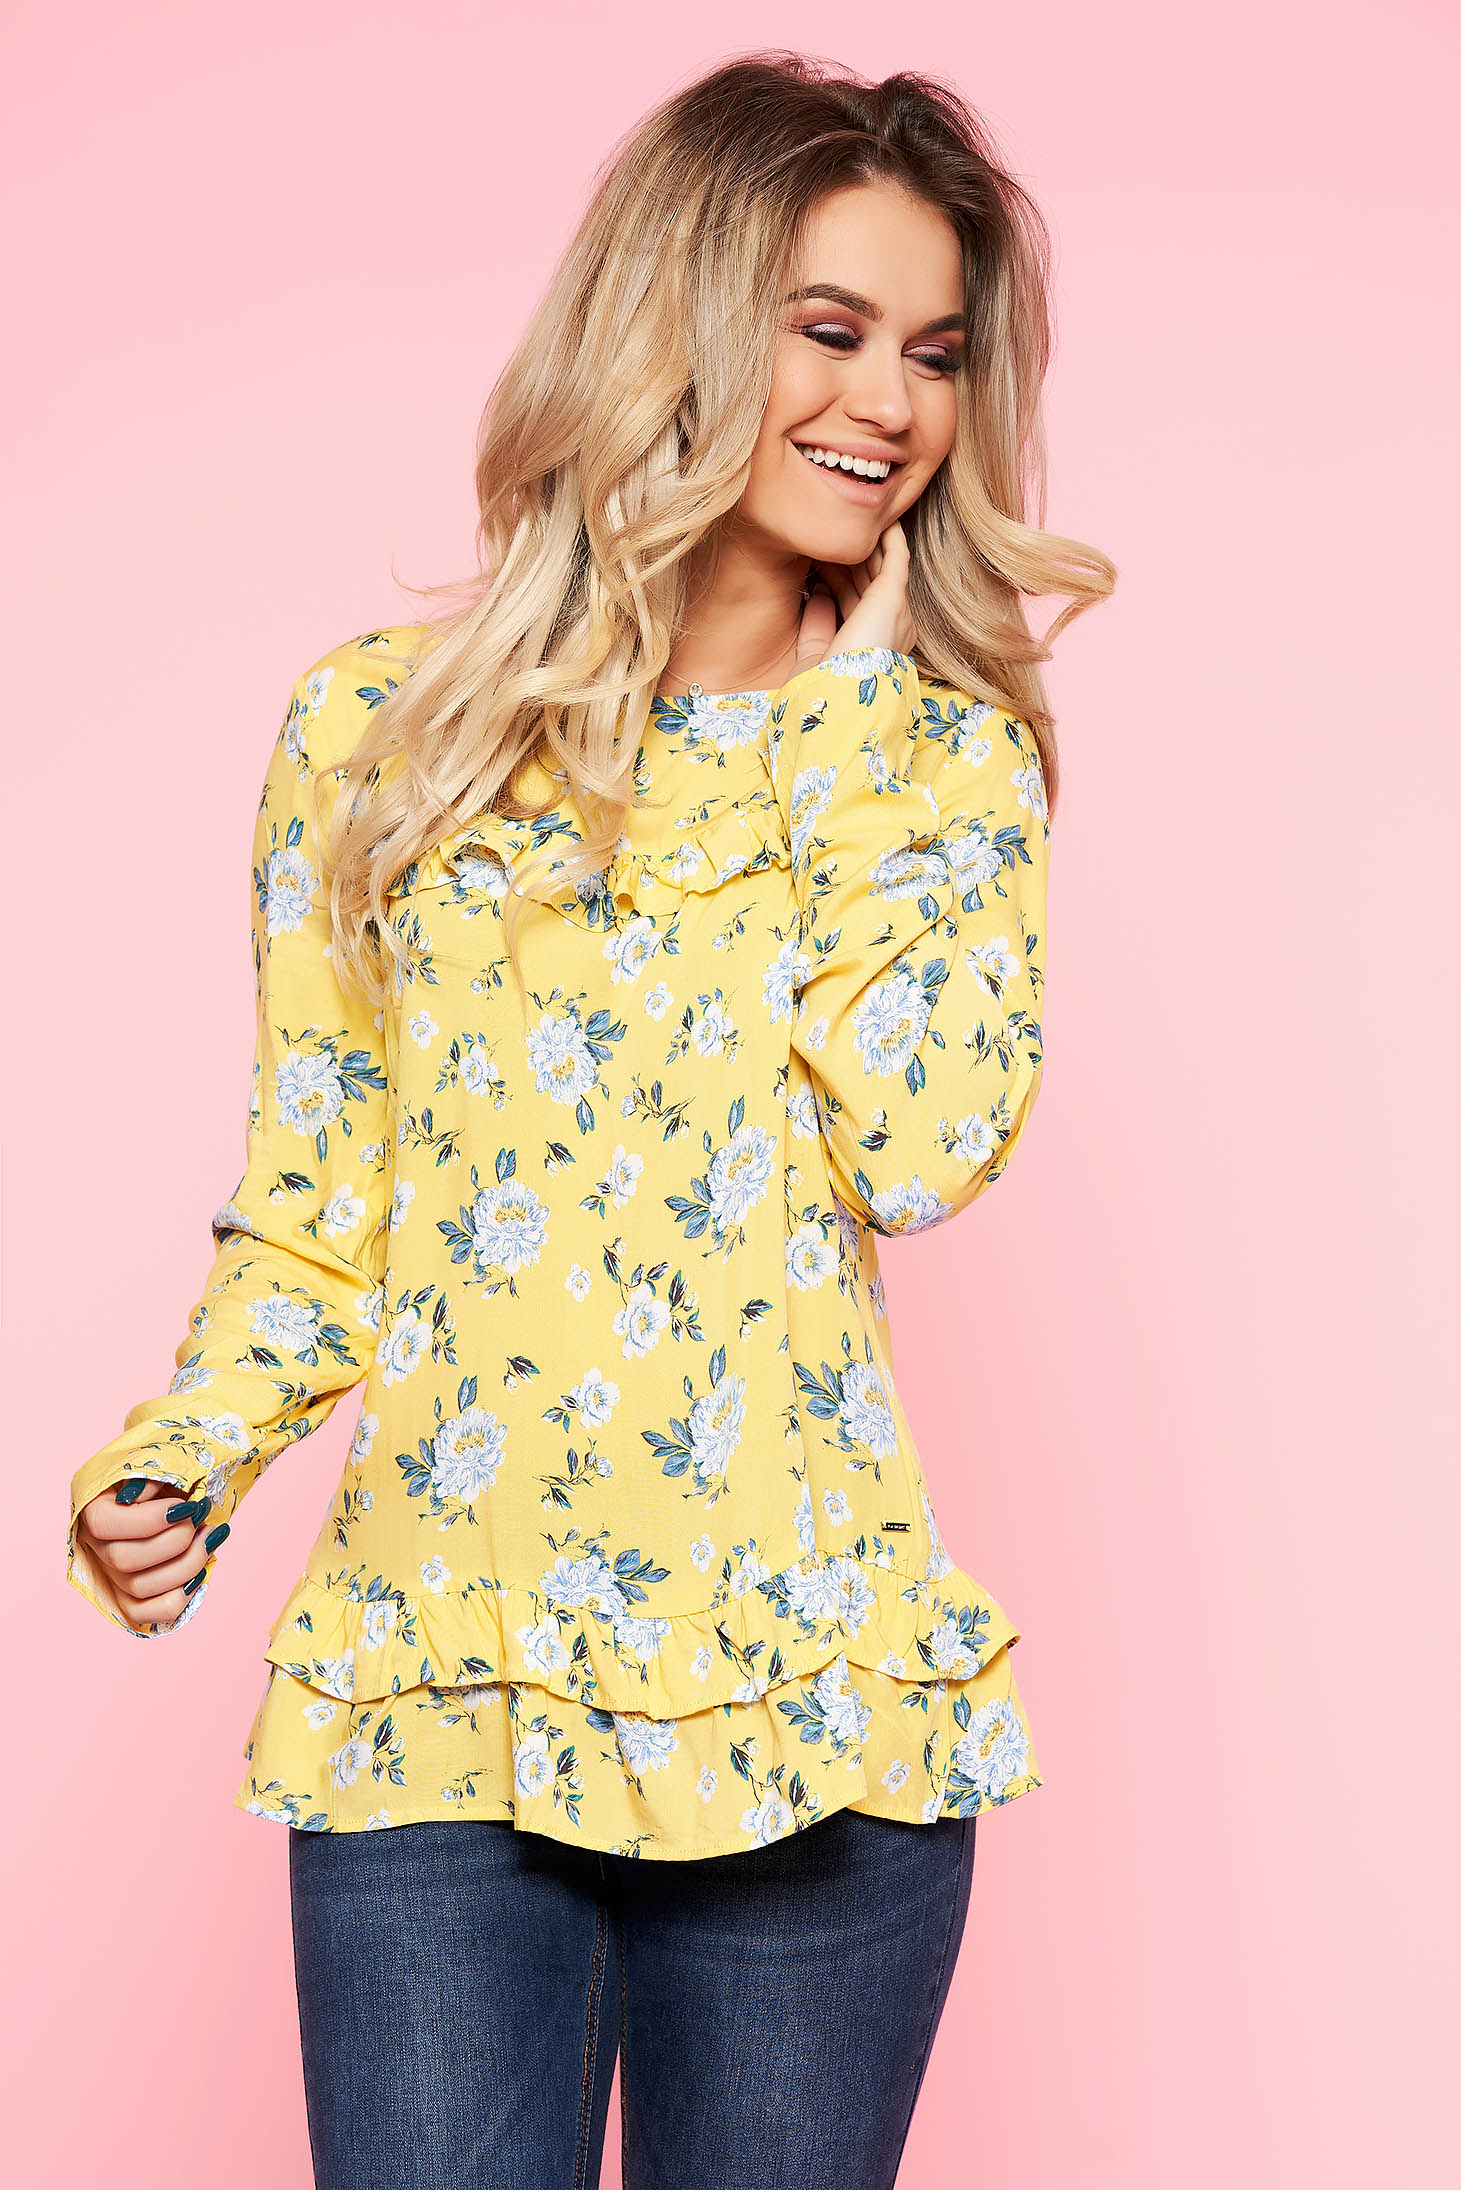 Top Secret yellow casual flared women`s blouse airy fabric with floral print with ruffle details